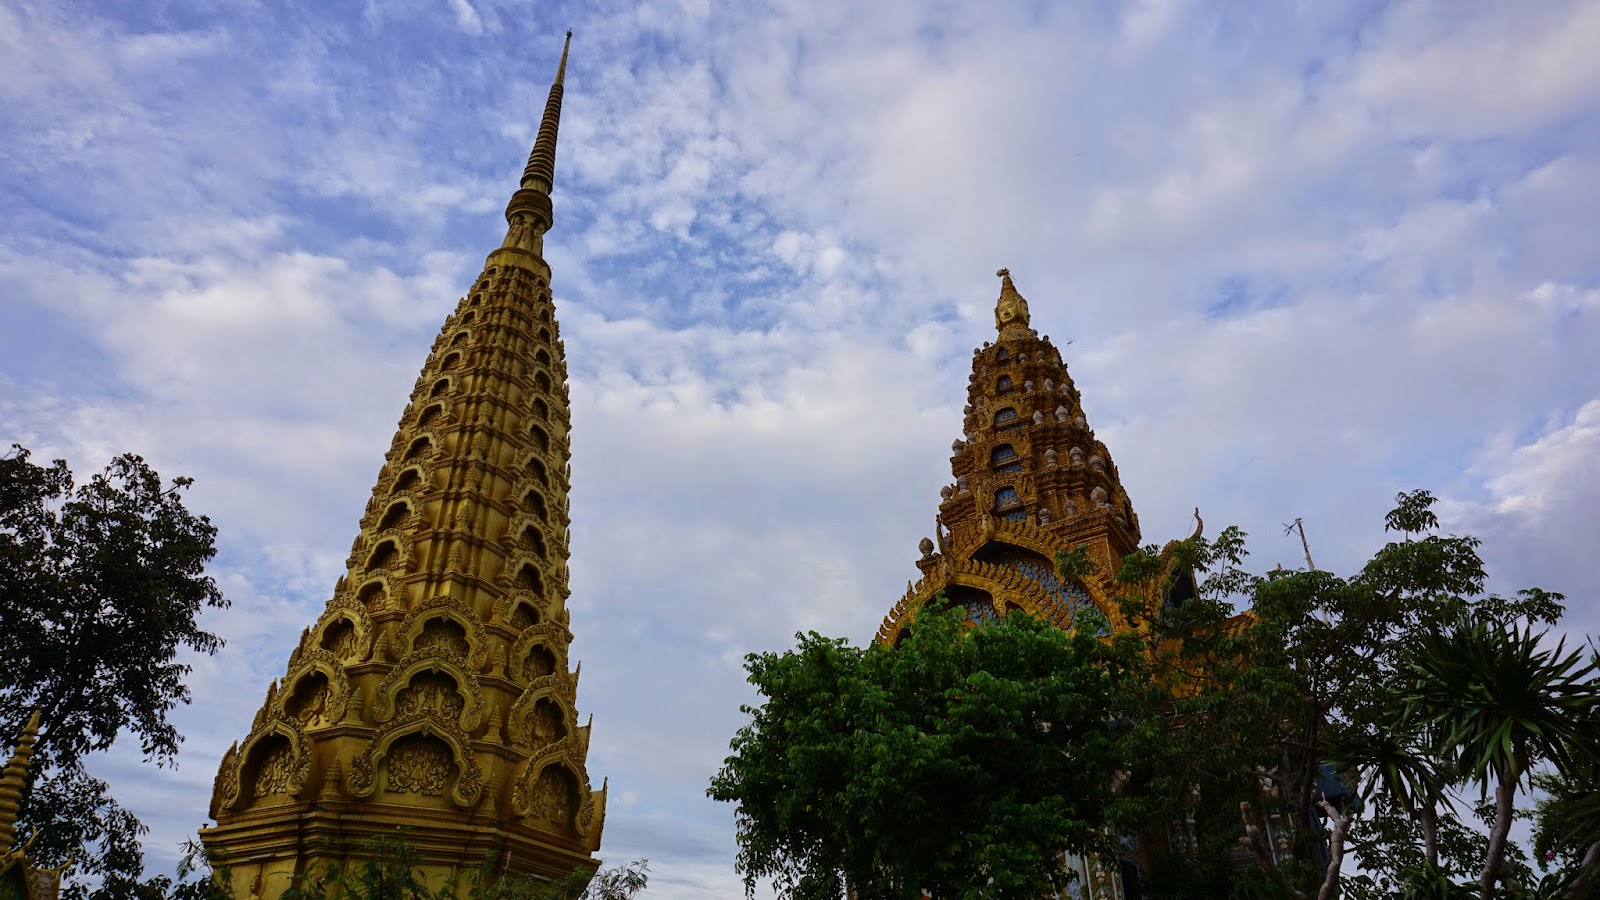 The pagodas atop Phnom Sampeau